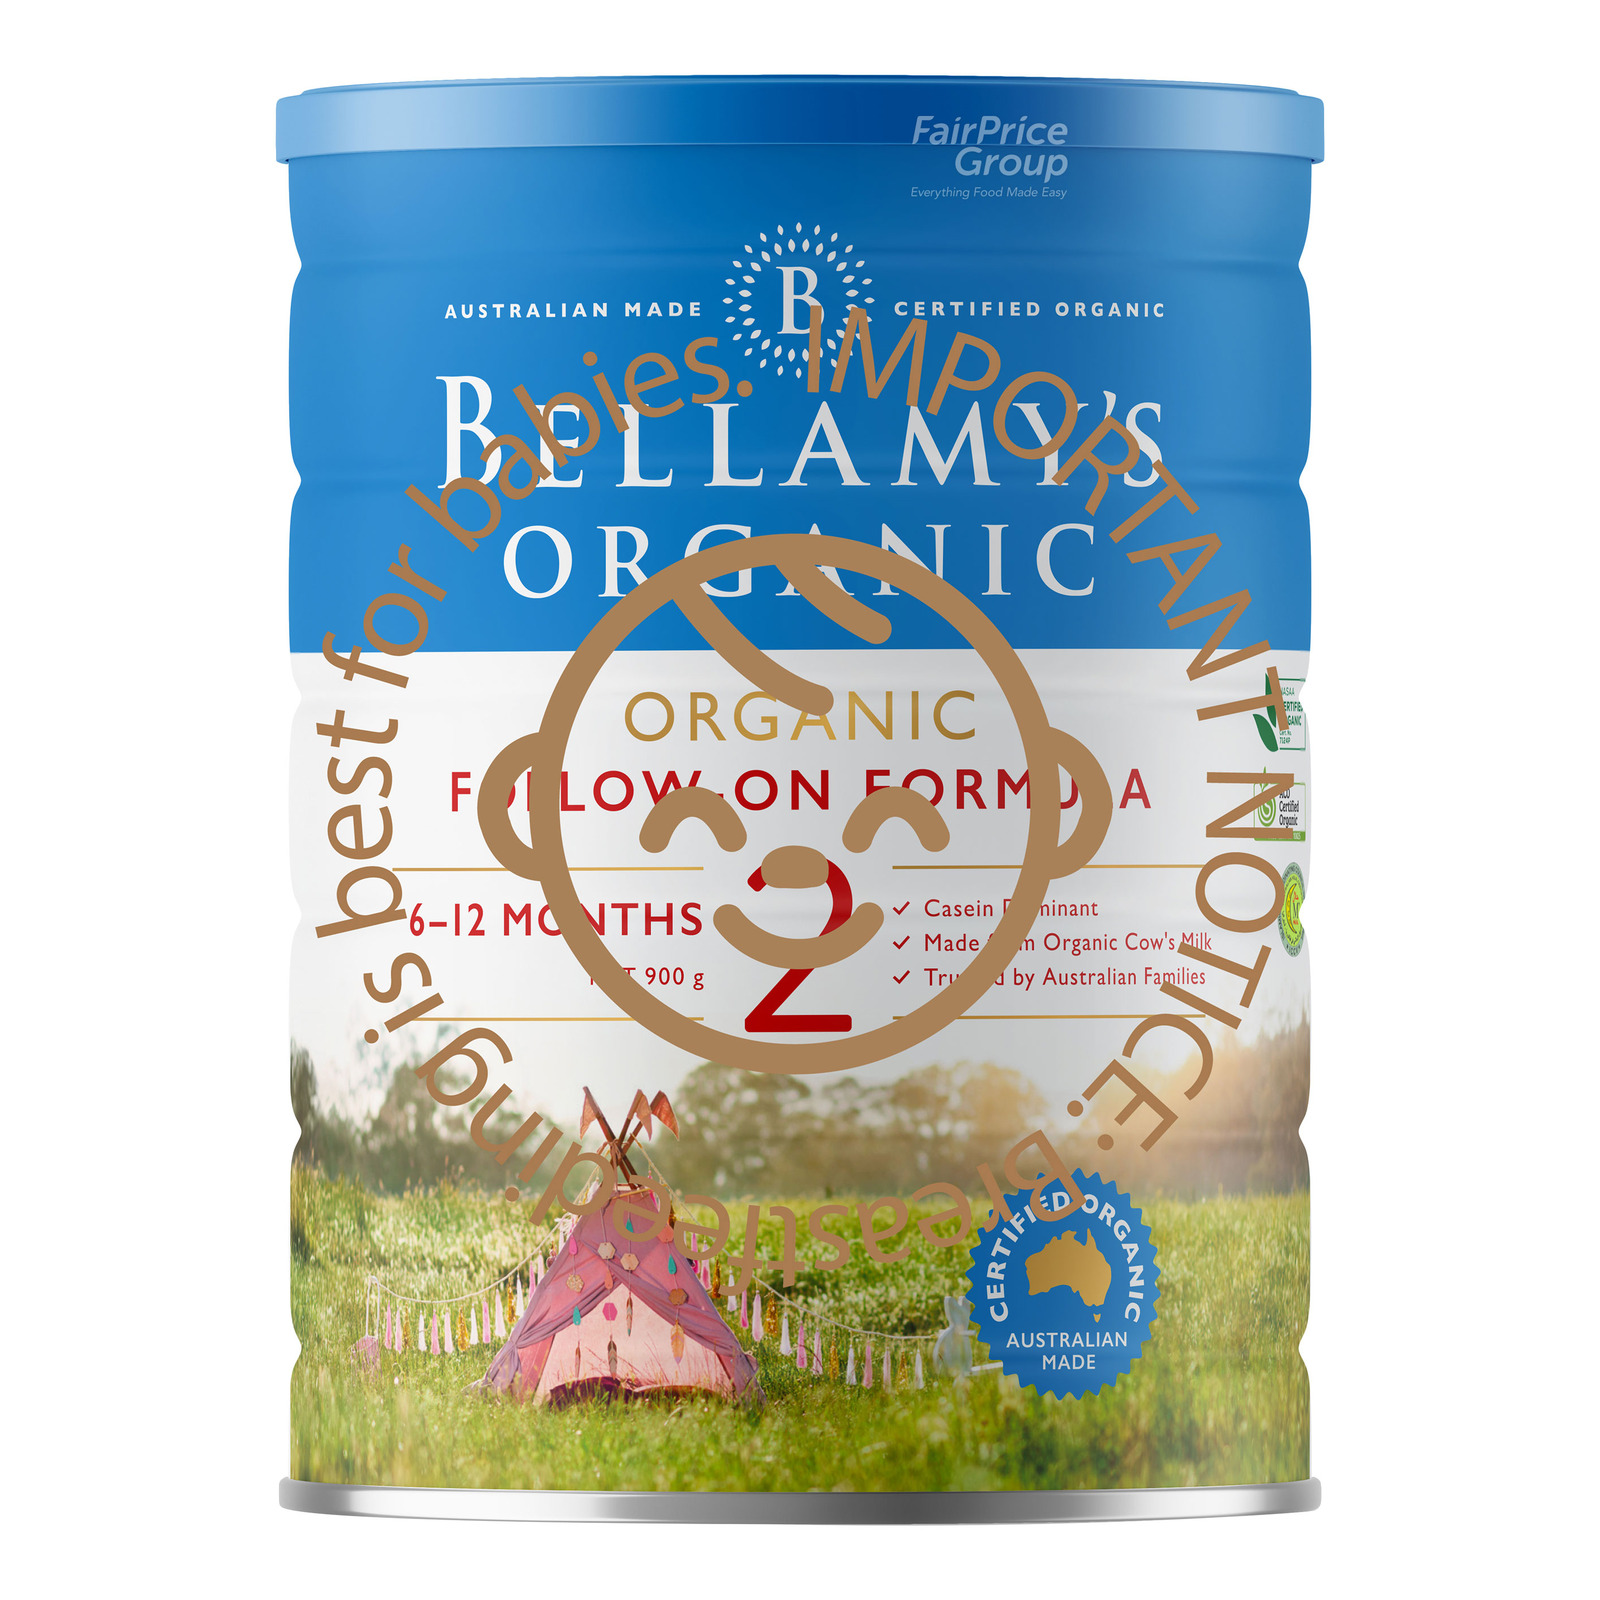 BELLAMYS ORGANIC organic step 2 follow on formula 900g